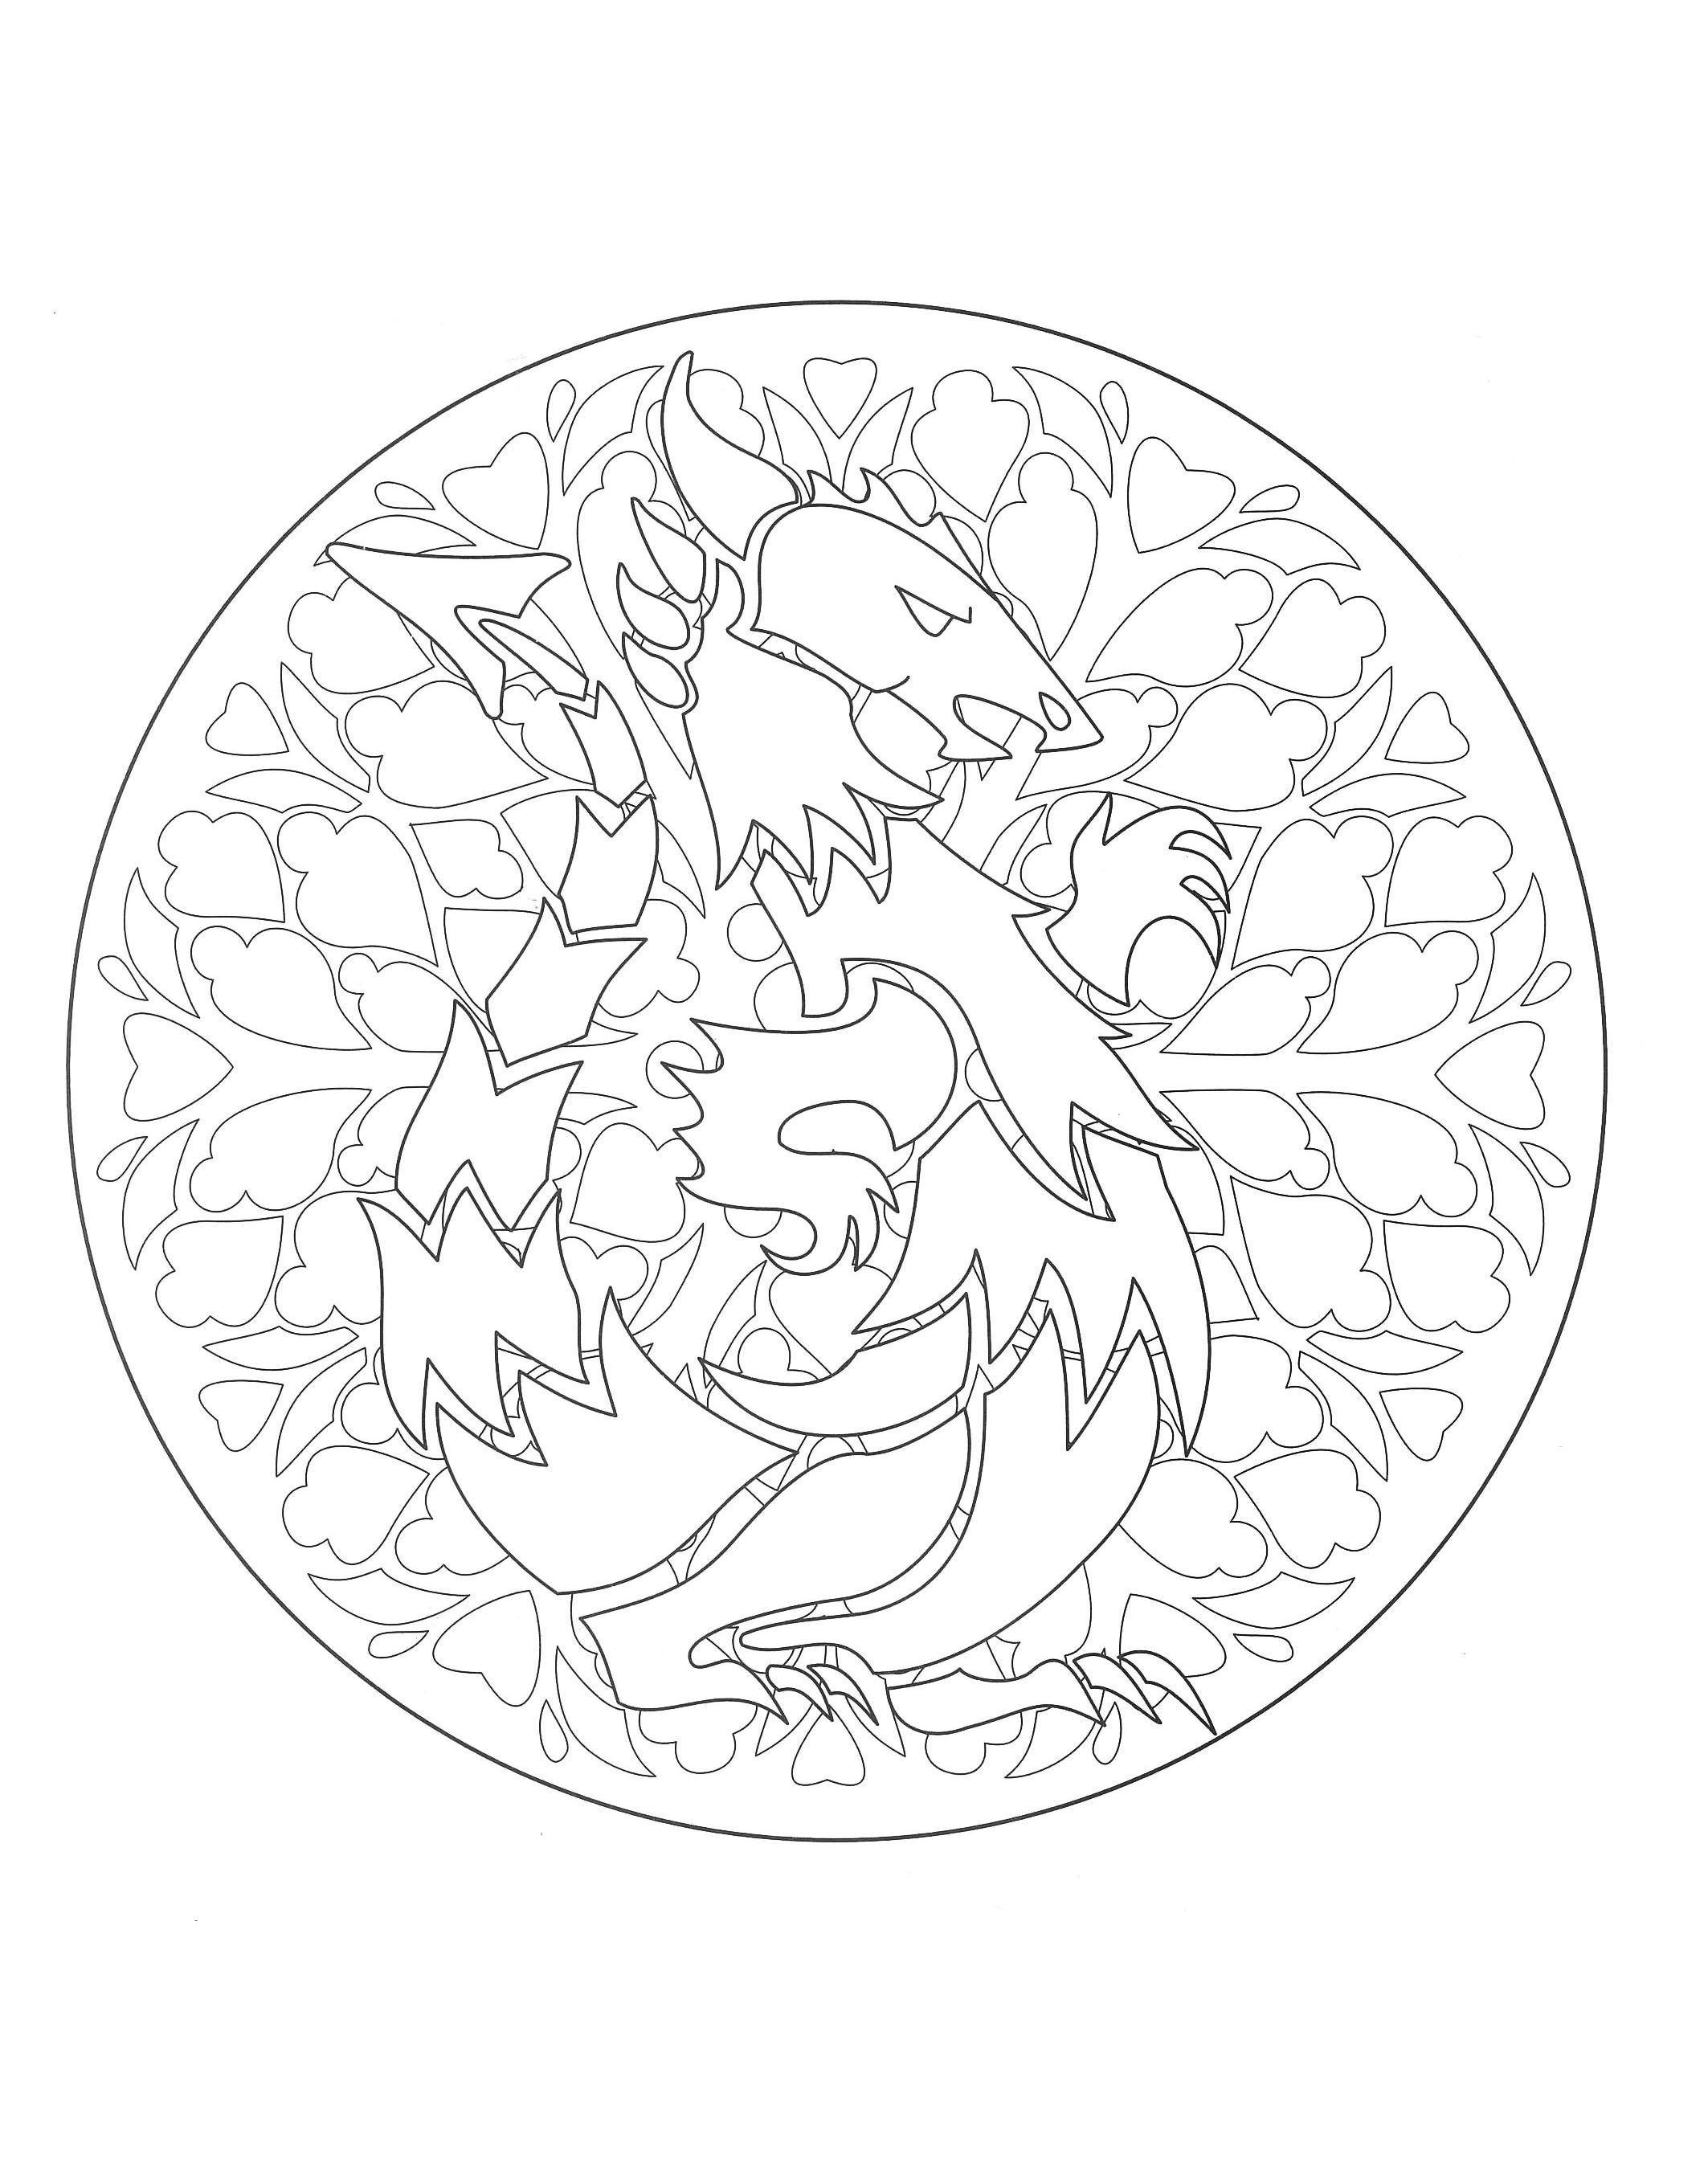 Dragon Mandala 1 Mandalas With Animals 100 Mandalas Zen